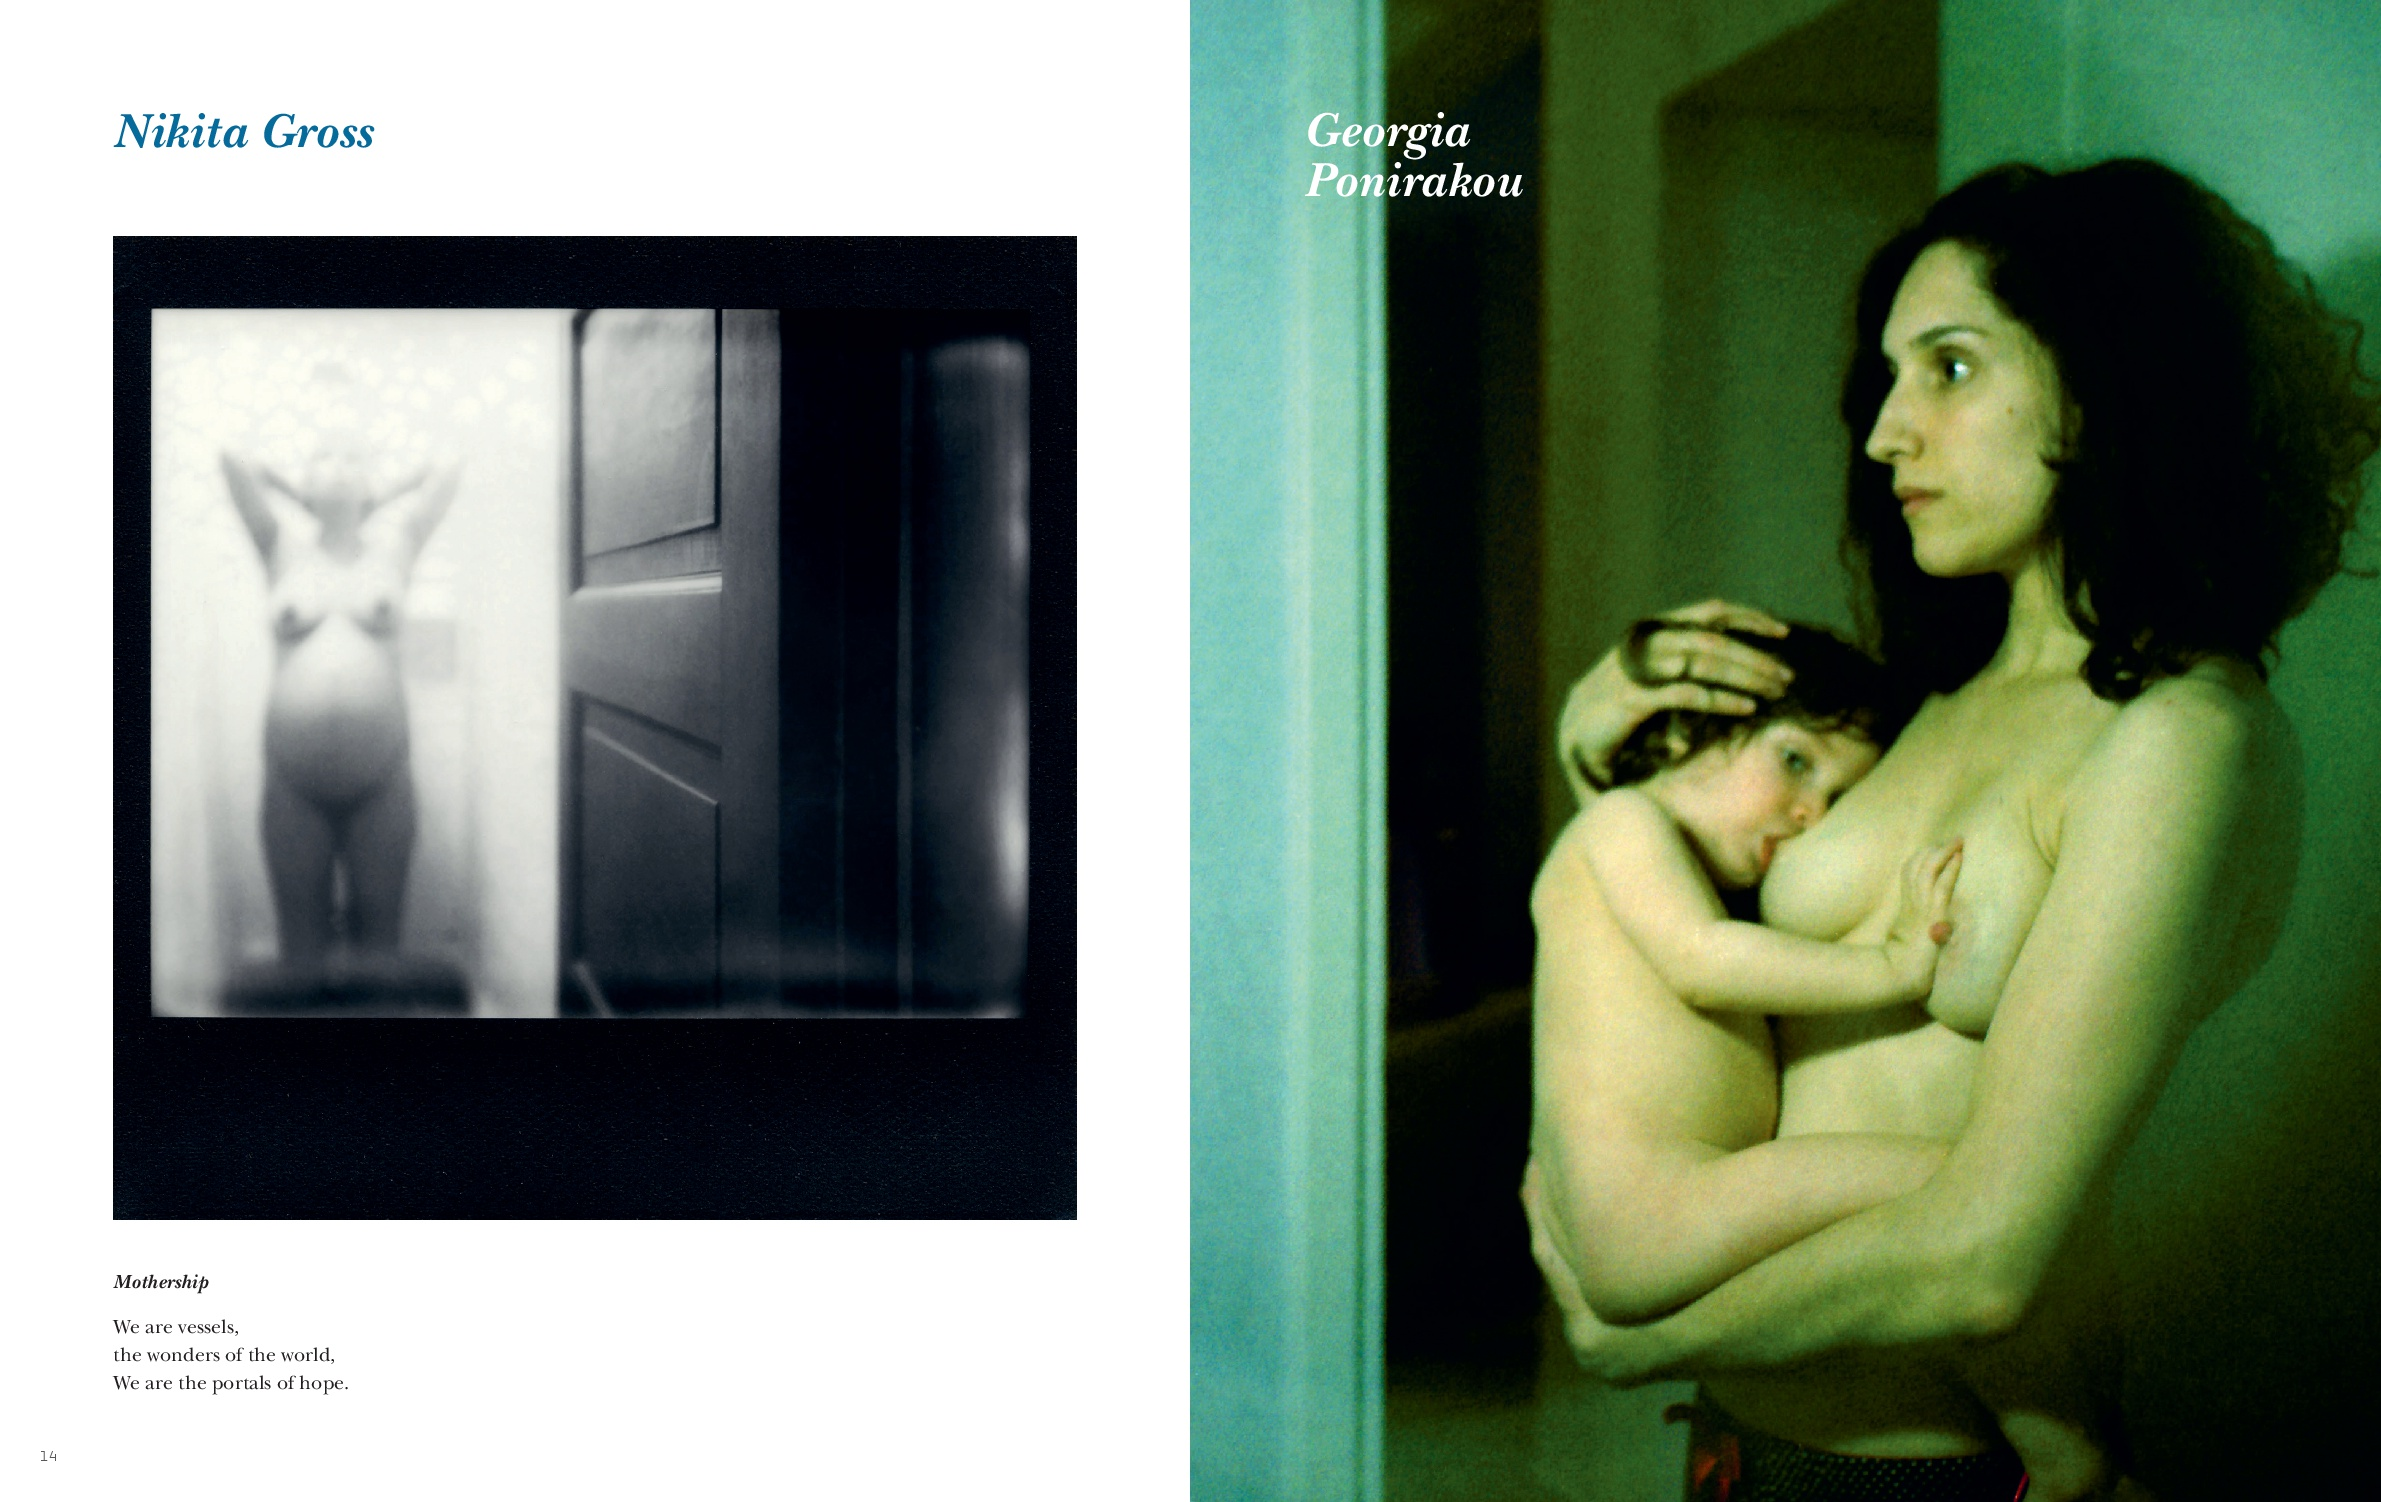 SHE_SHOOTS_FILM_ISSUE_2_SPREADS-(1)-002.jpg